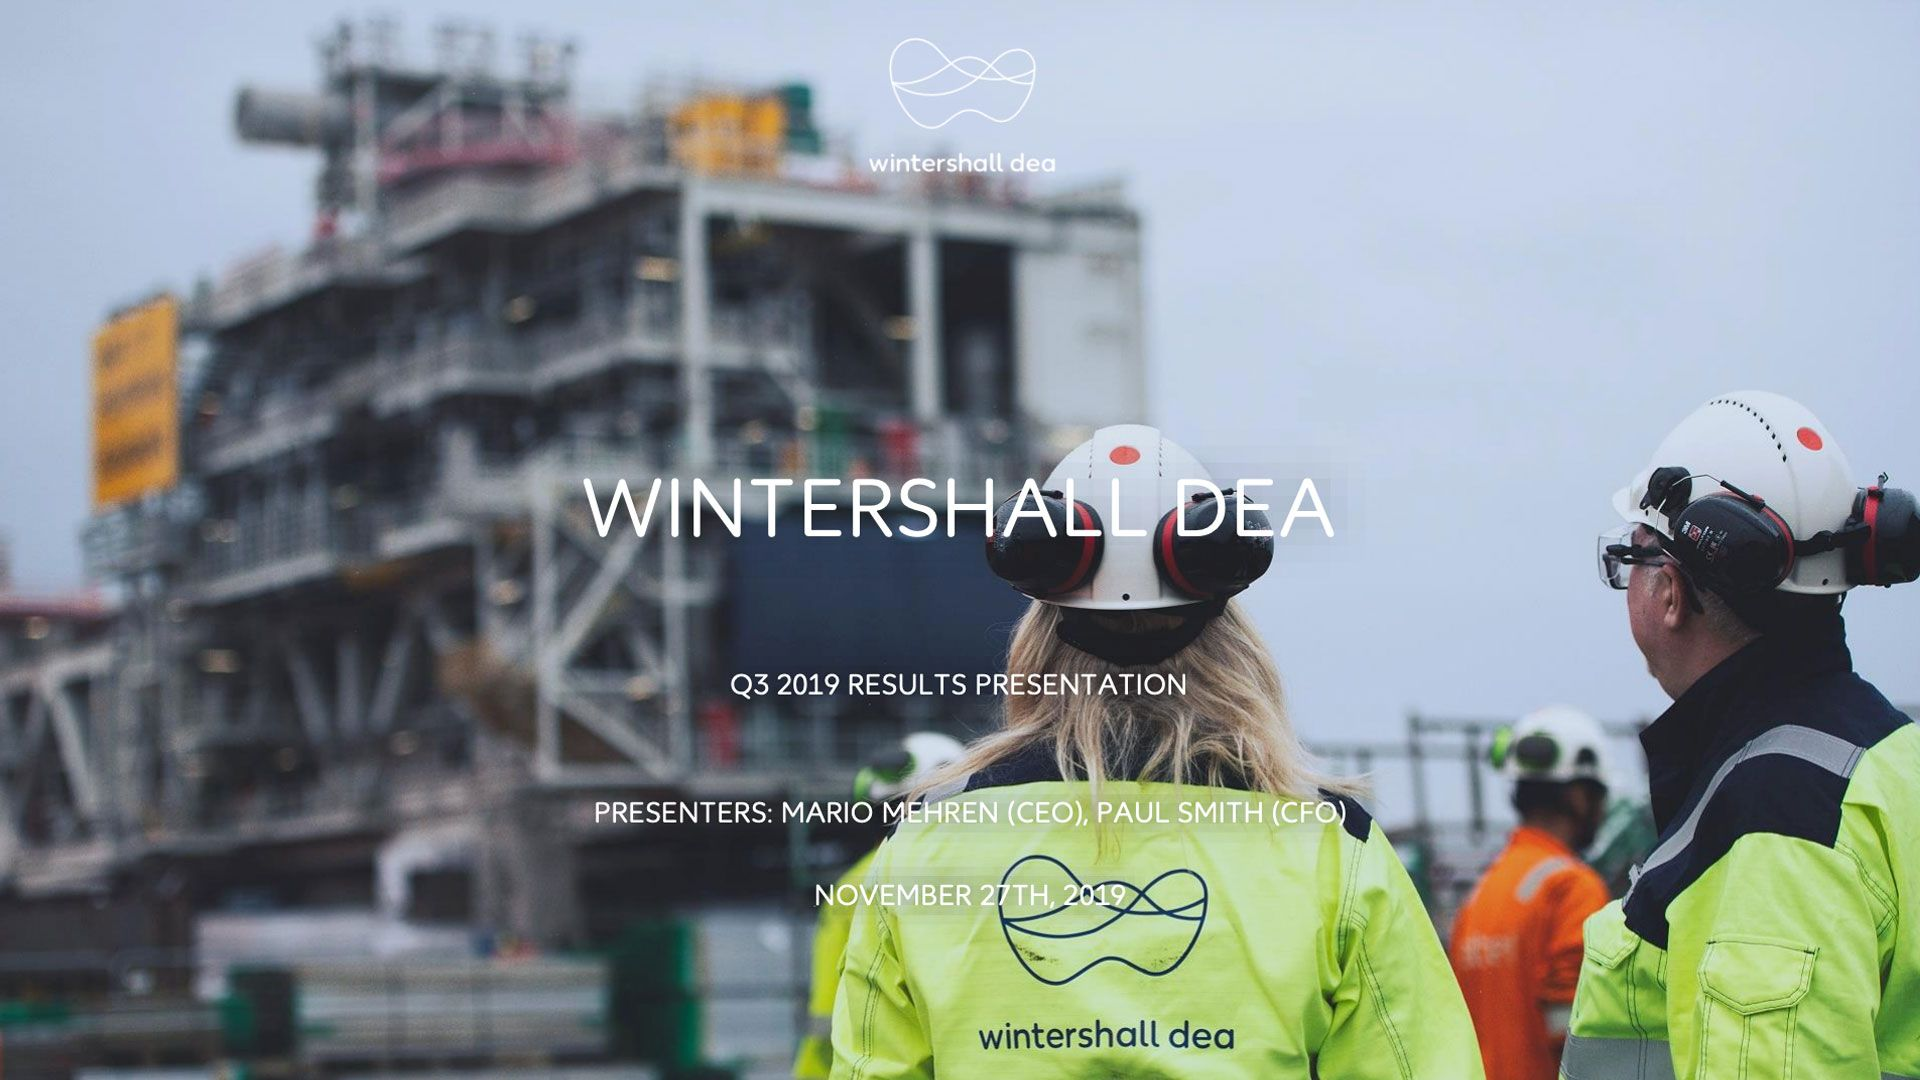 Q3 Results Video Wintershall Dea